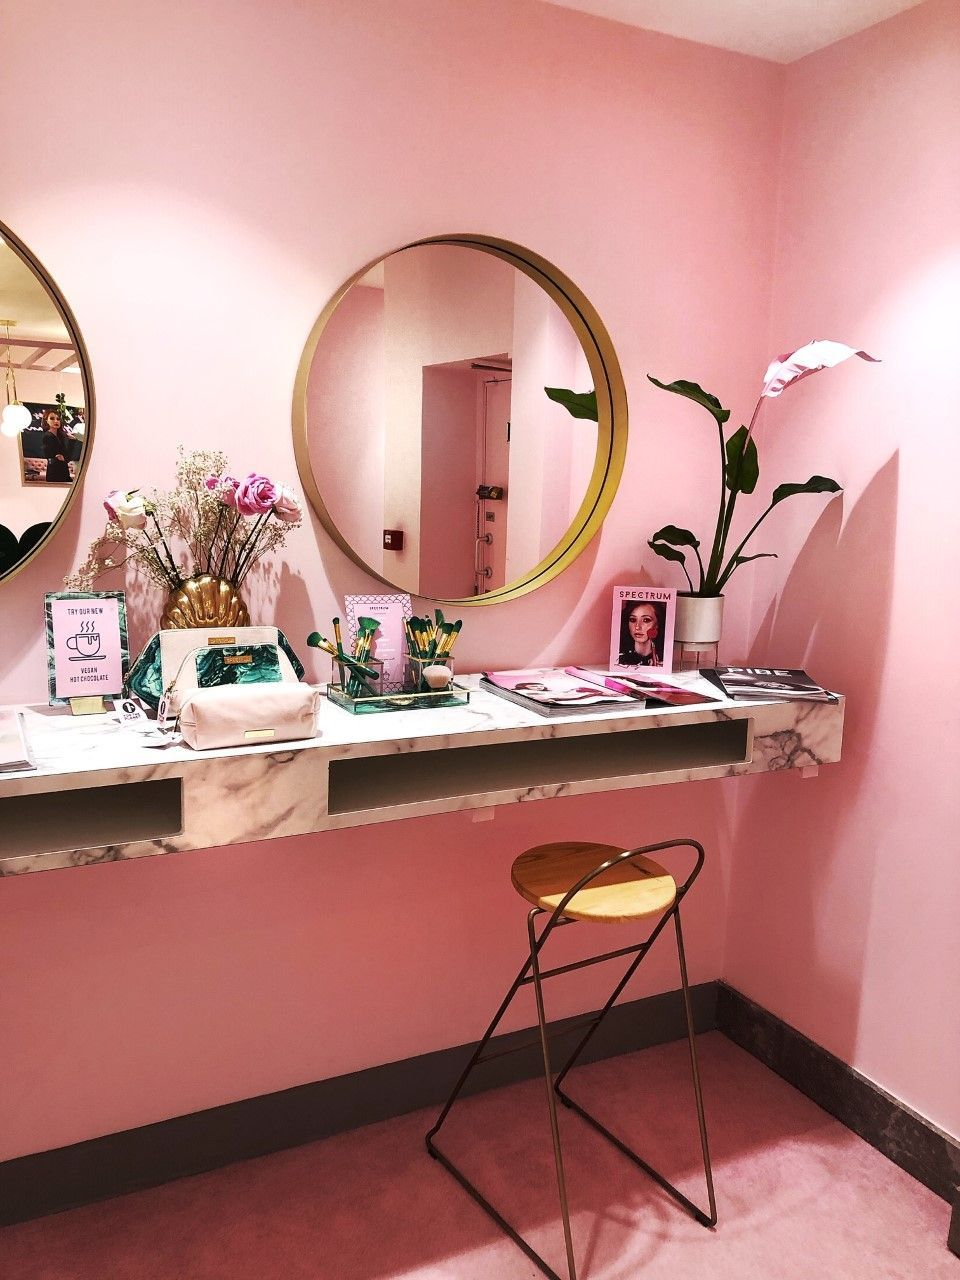 Pink and marble interior inspiration. Pastel pink walls